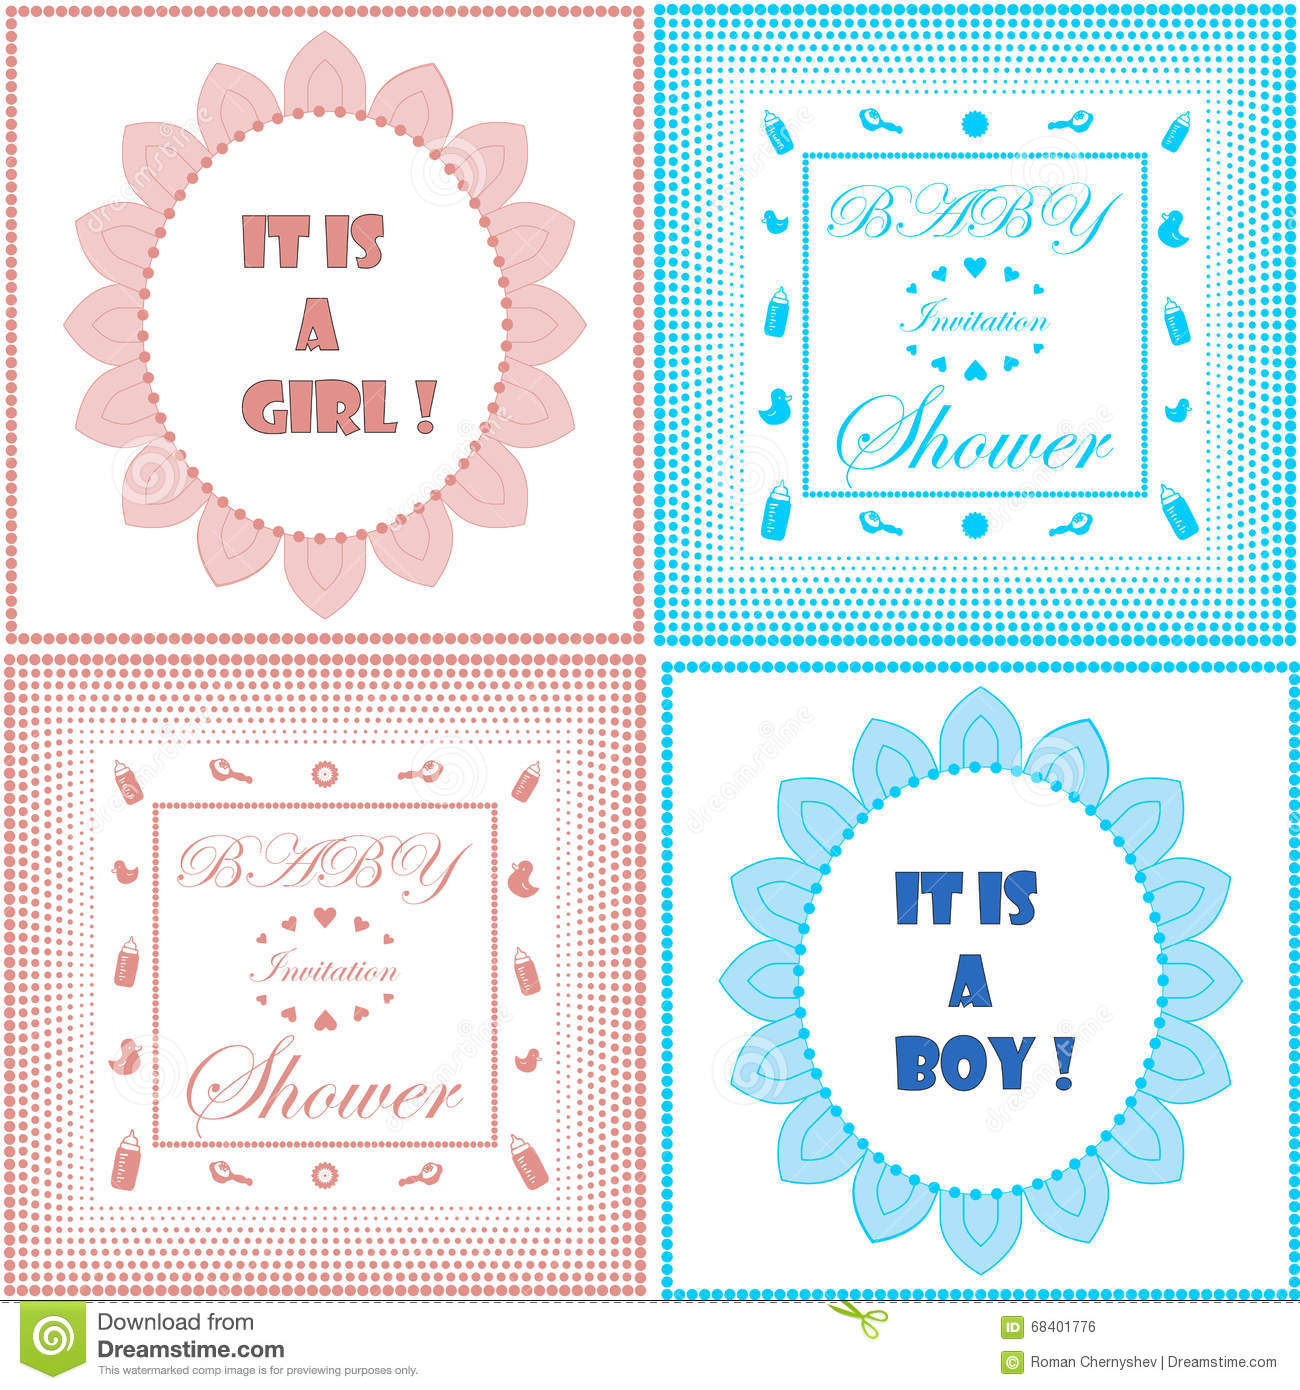 Baby Shower Invitation Card Template Set Boy And Girl Design - Card template free: invitation card template for baby shower